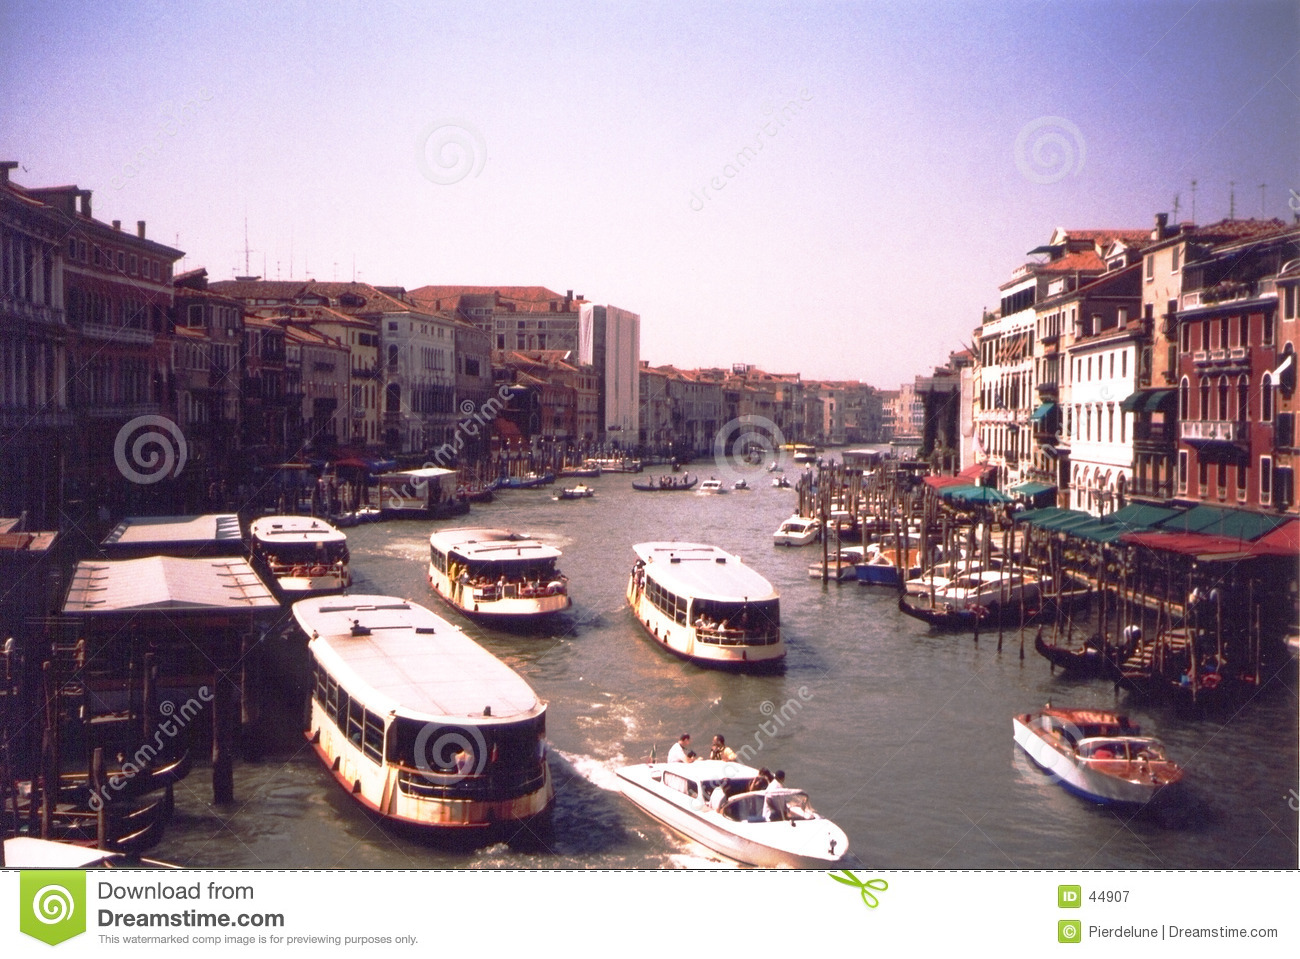 Canal grand - Venise Italie